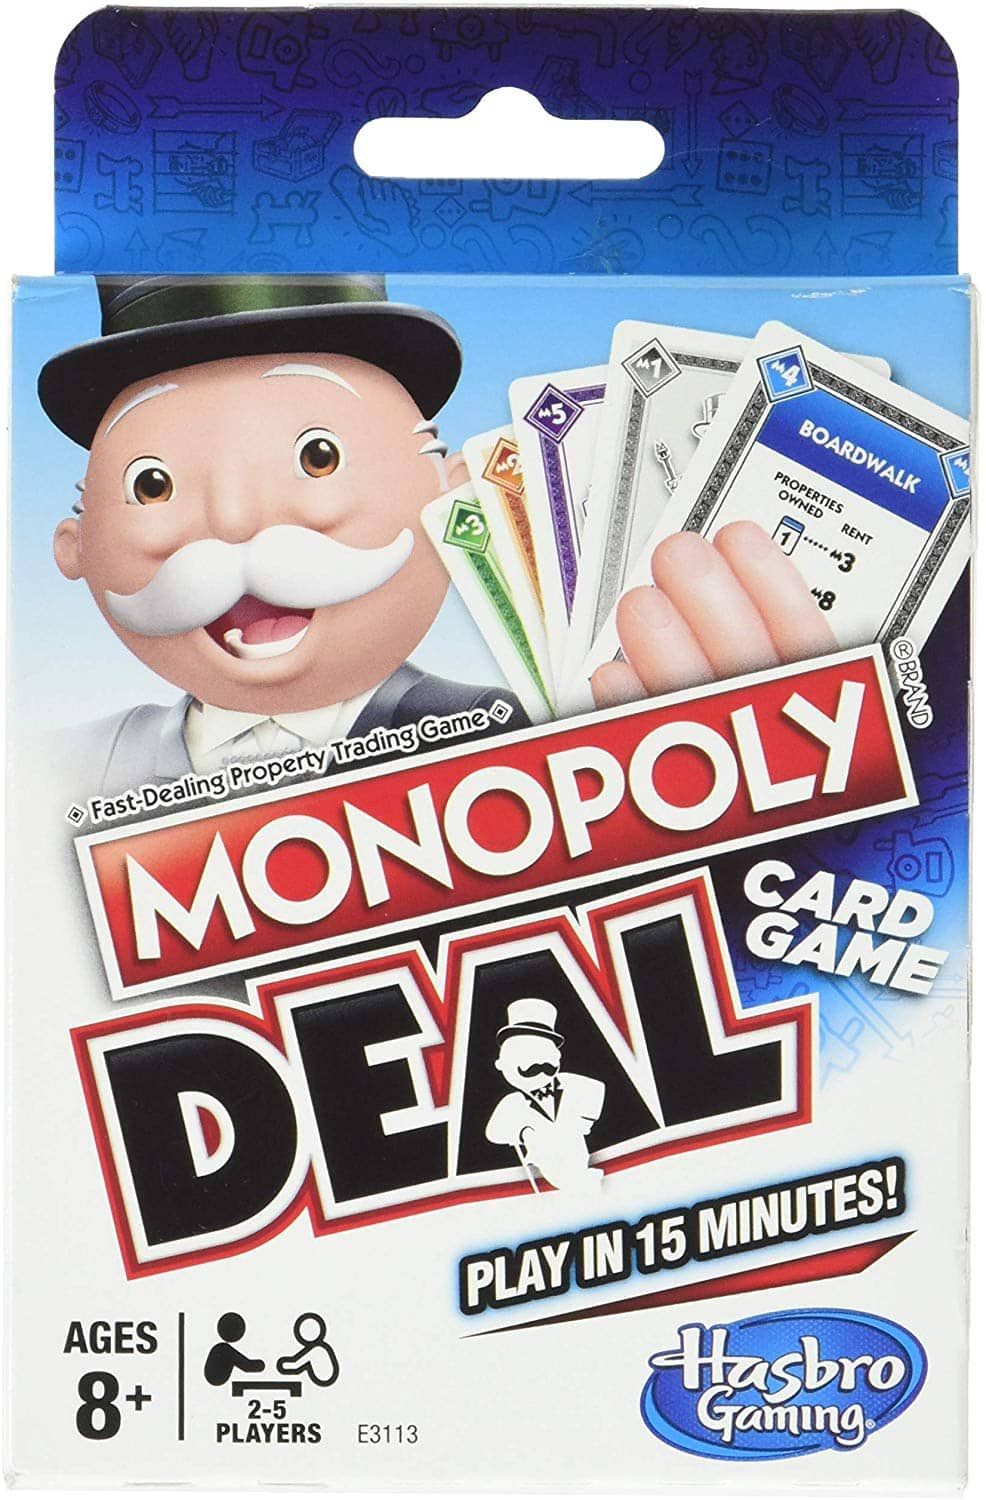 Monopoly Deal Card Game $3.99 + Free Prime Shipping